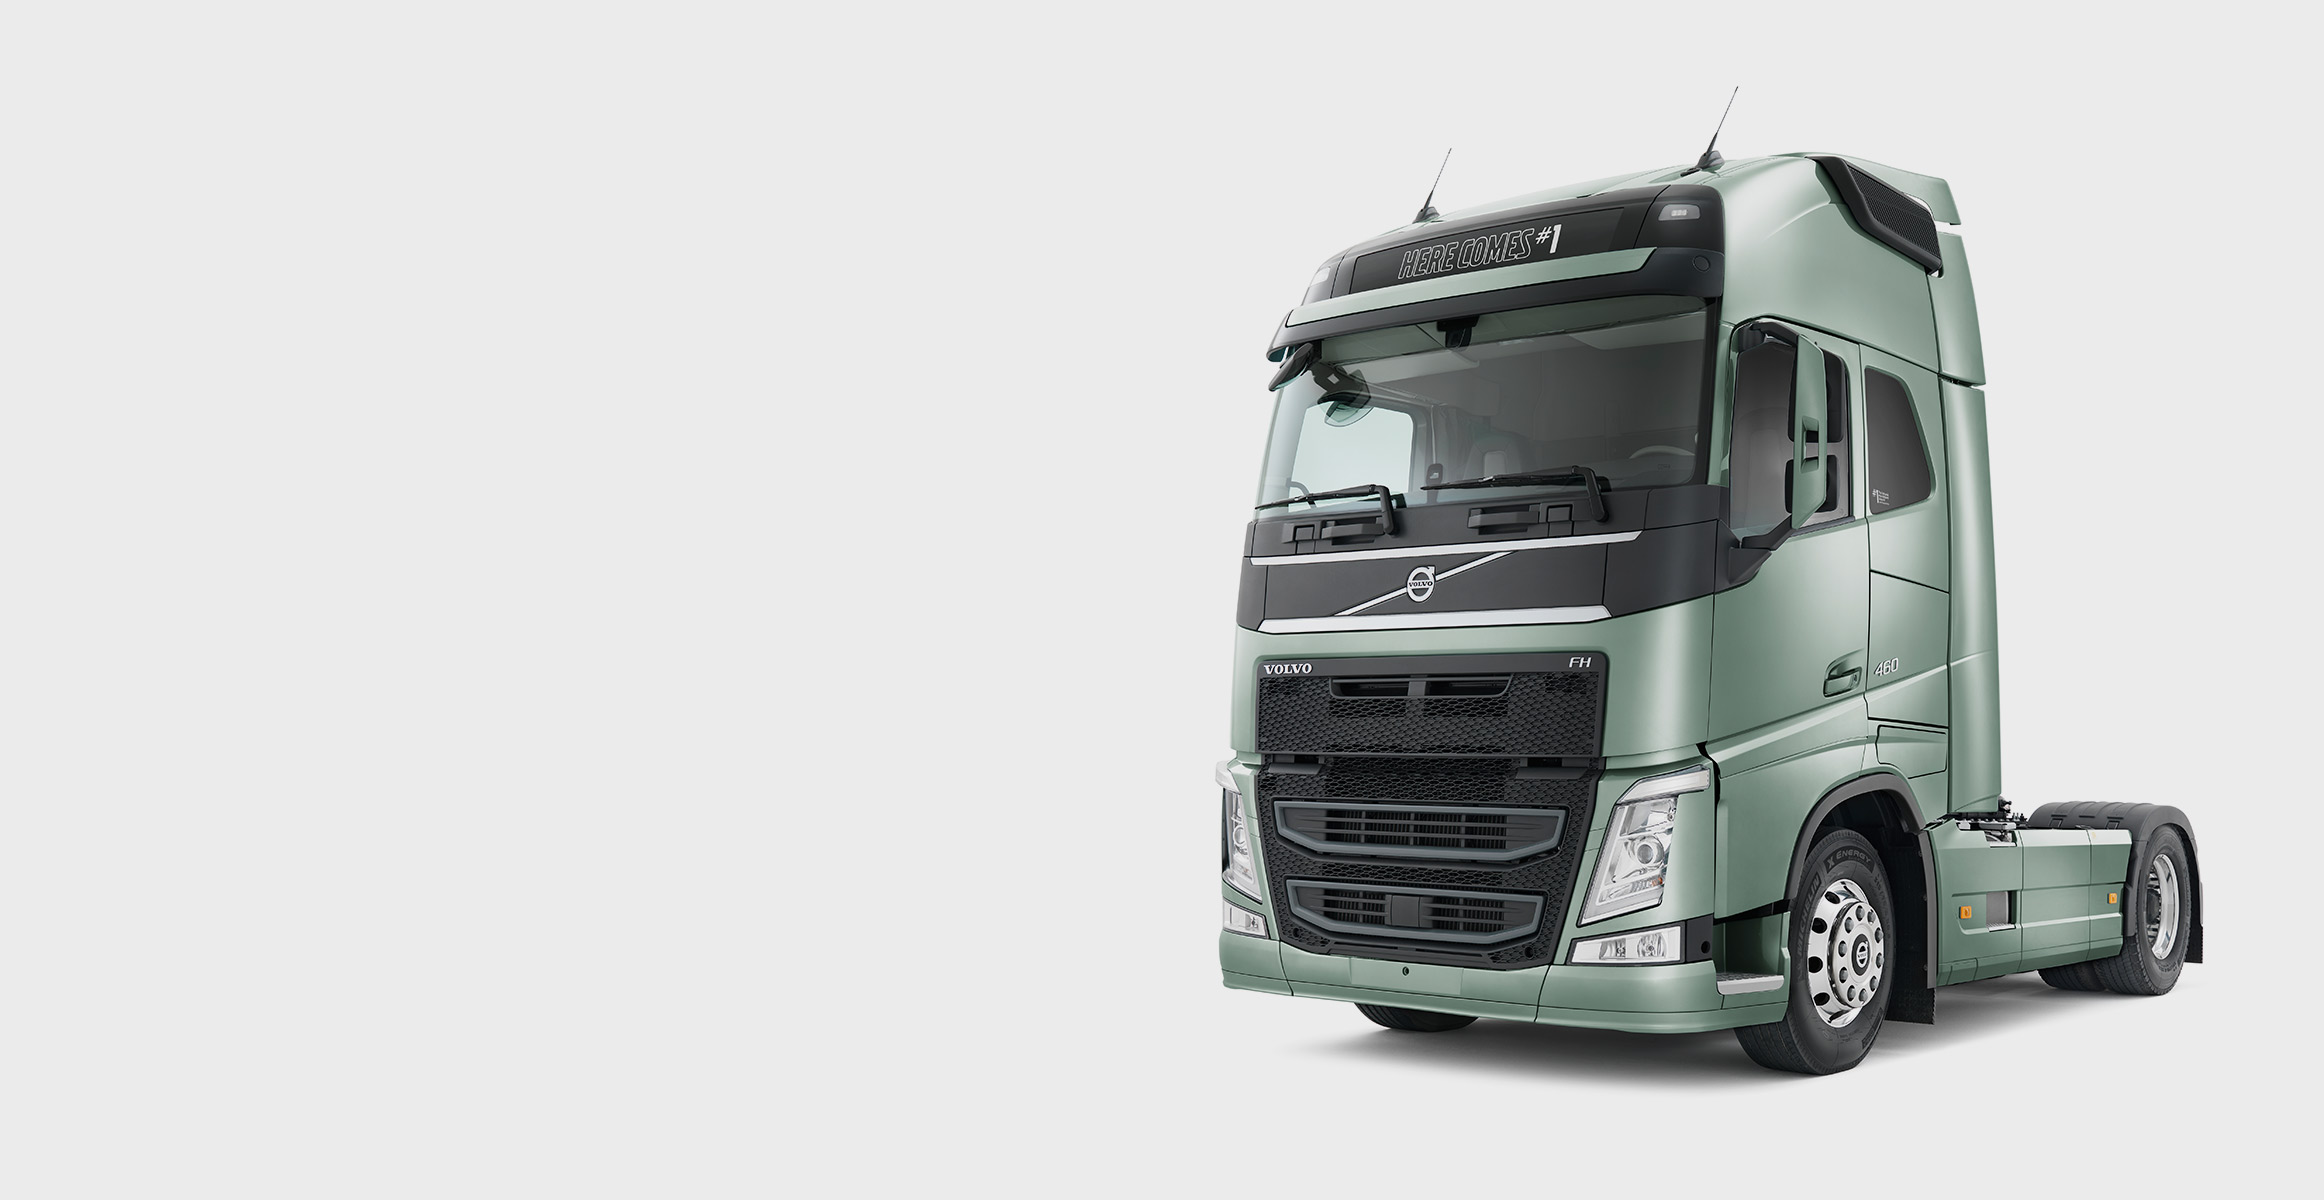 Volvo fh photo - 1